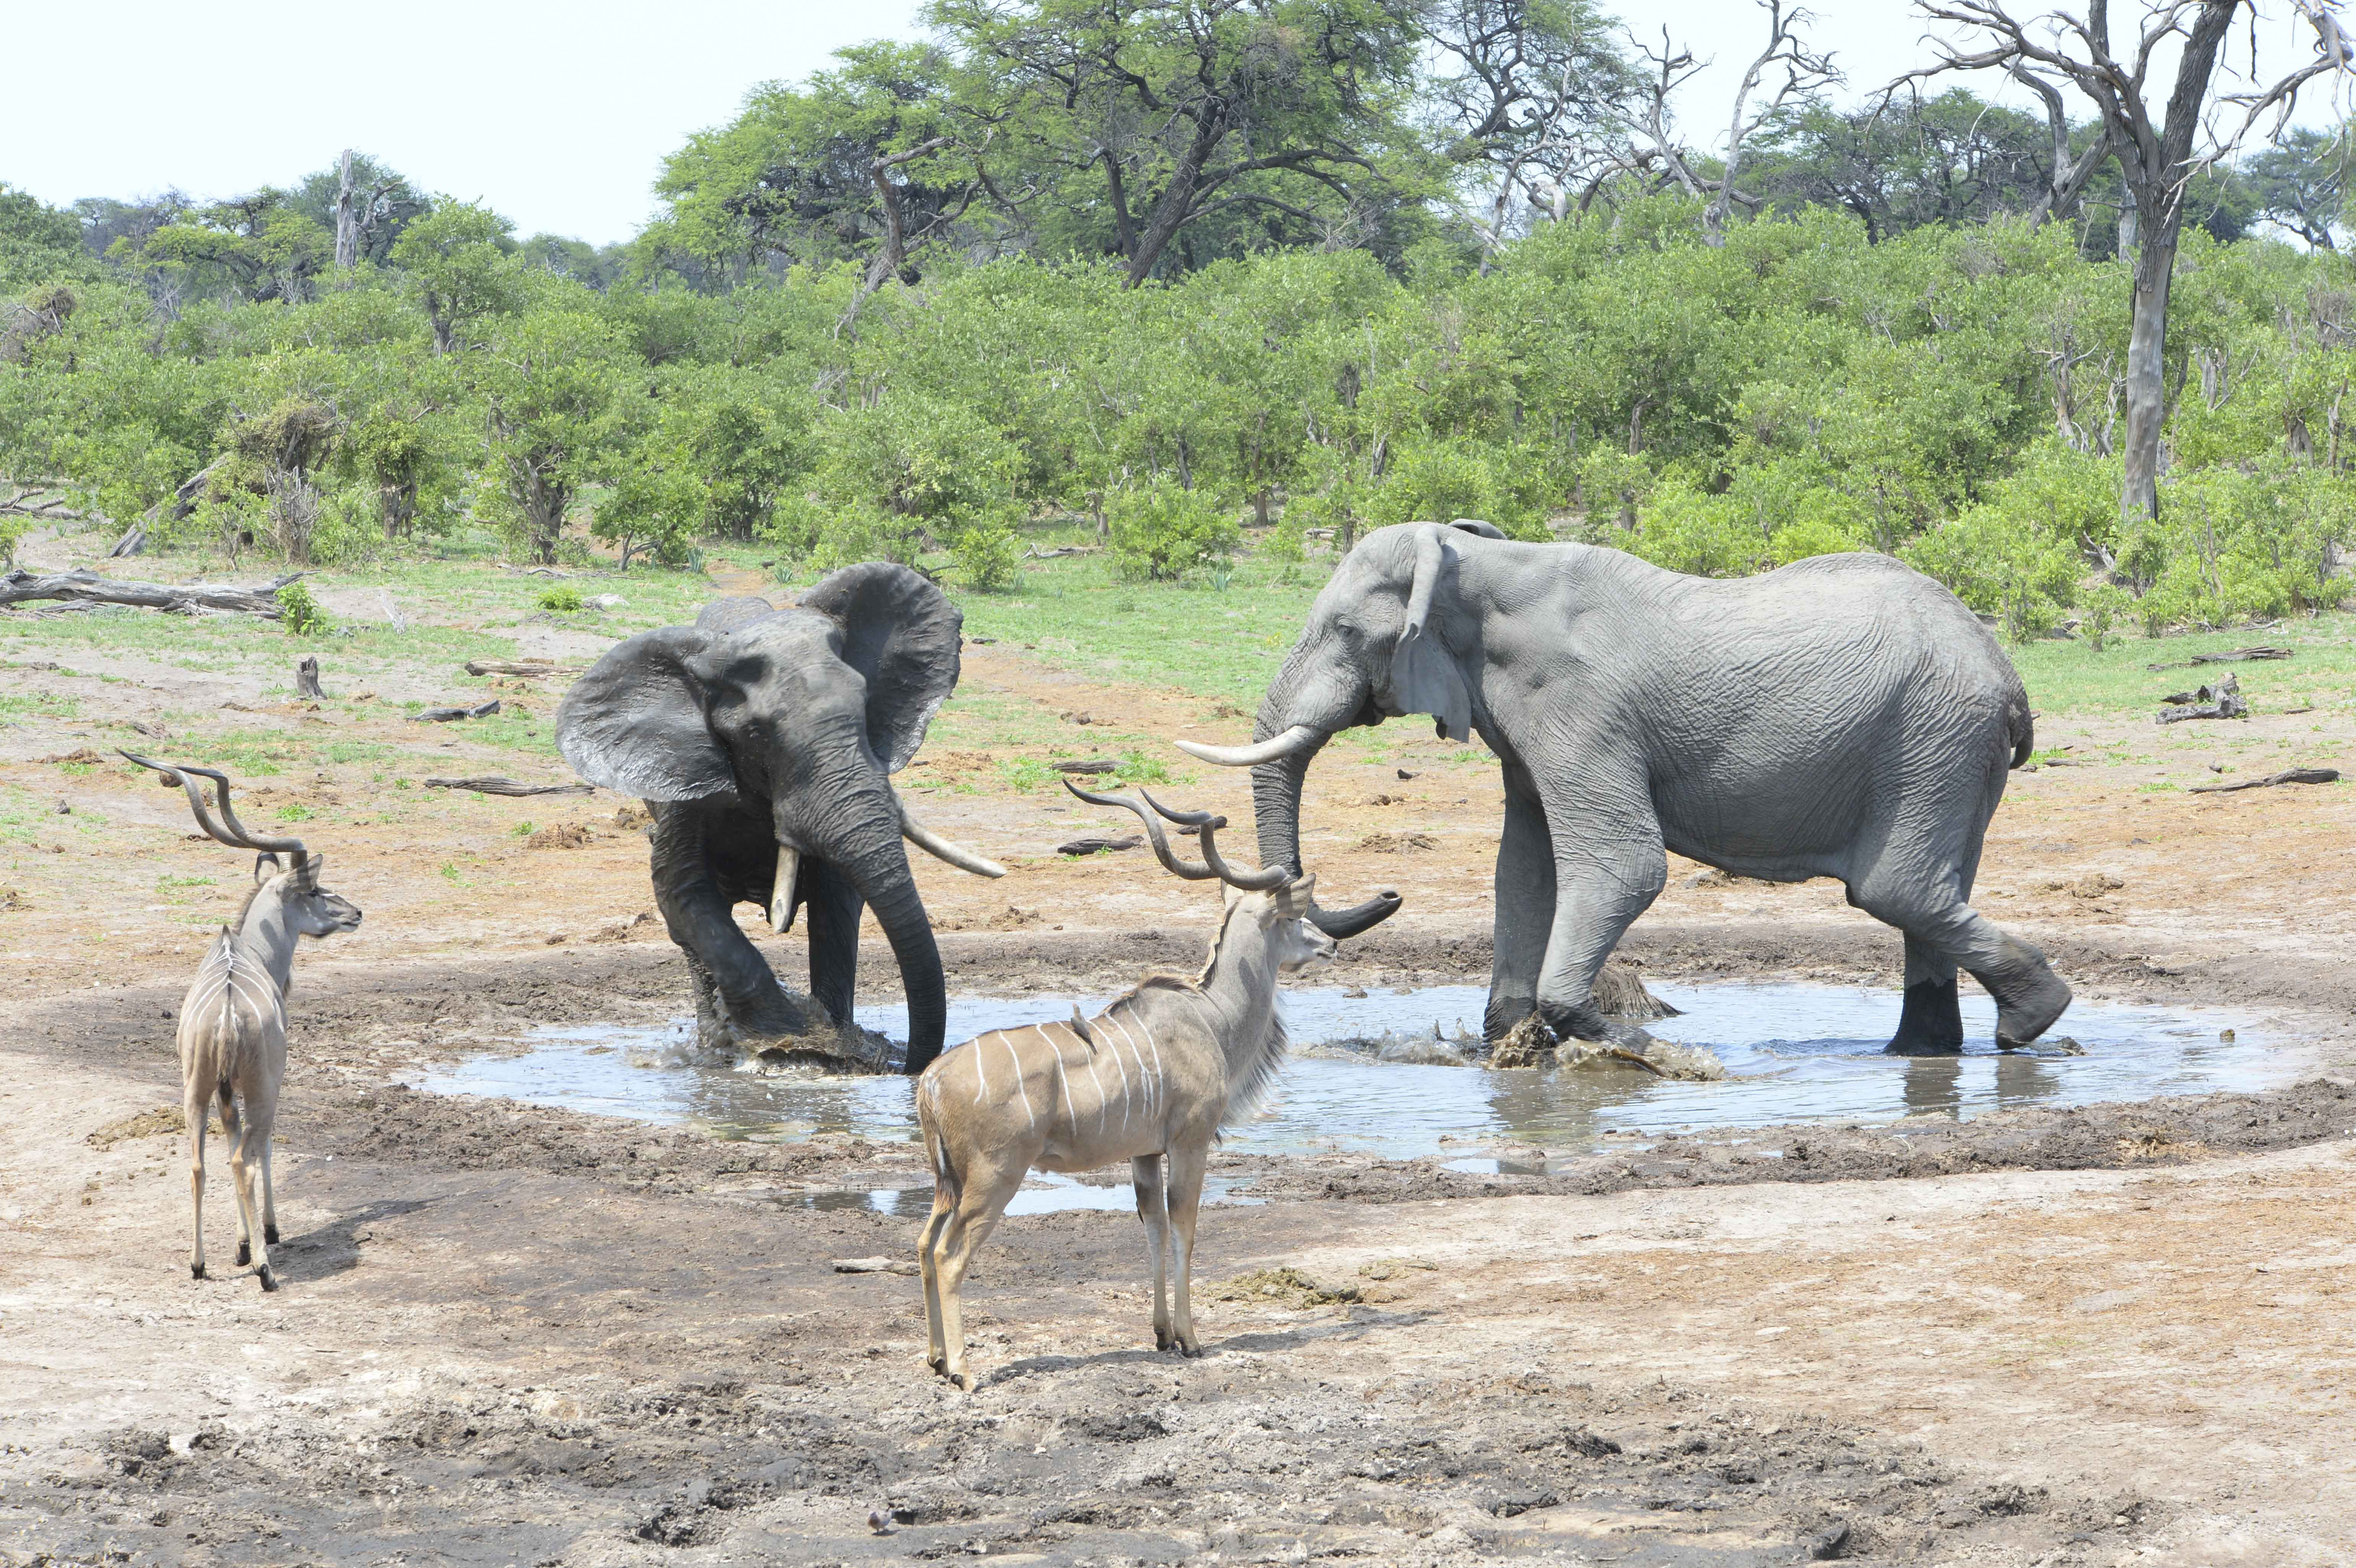 Elephants struggeling, Kudus nearby, BA ©Johannes Ratermann